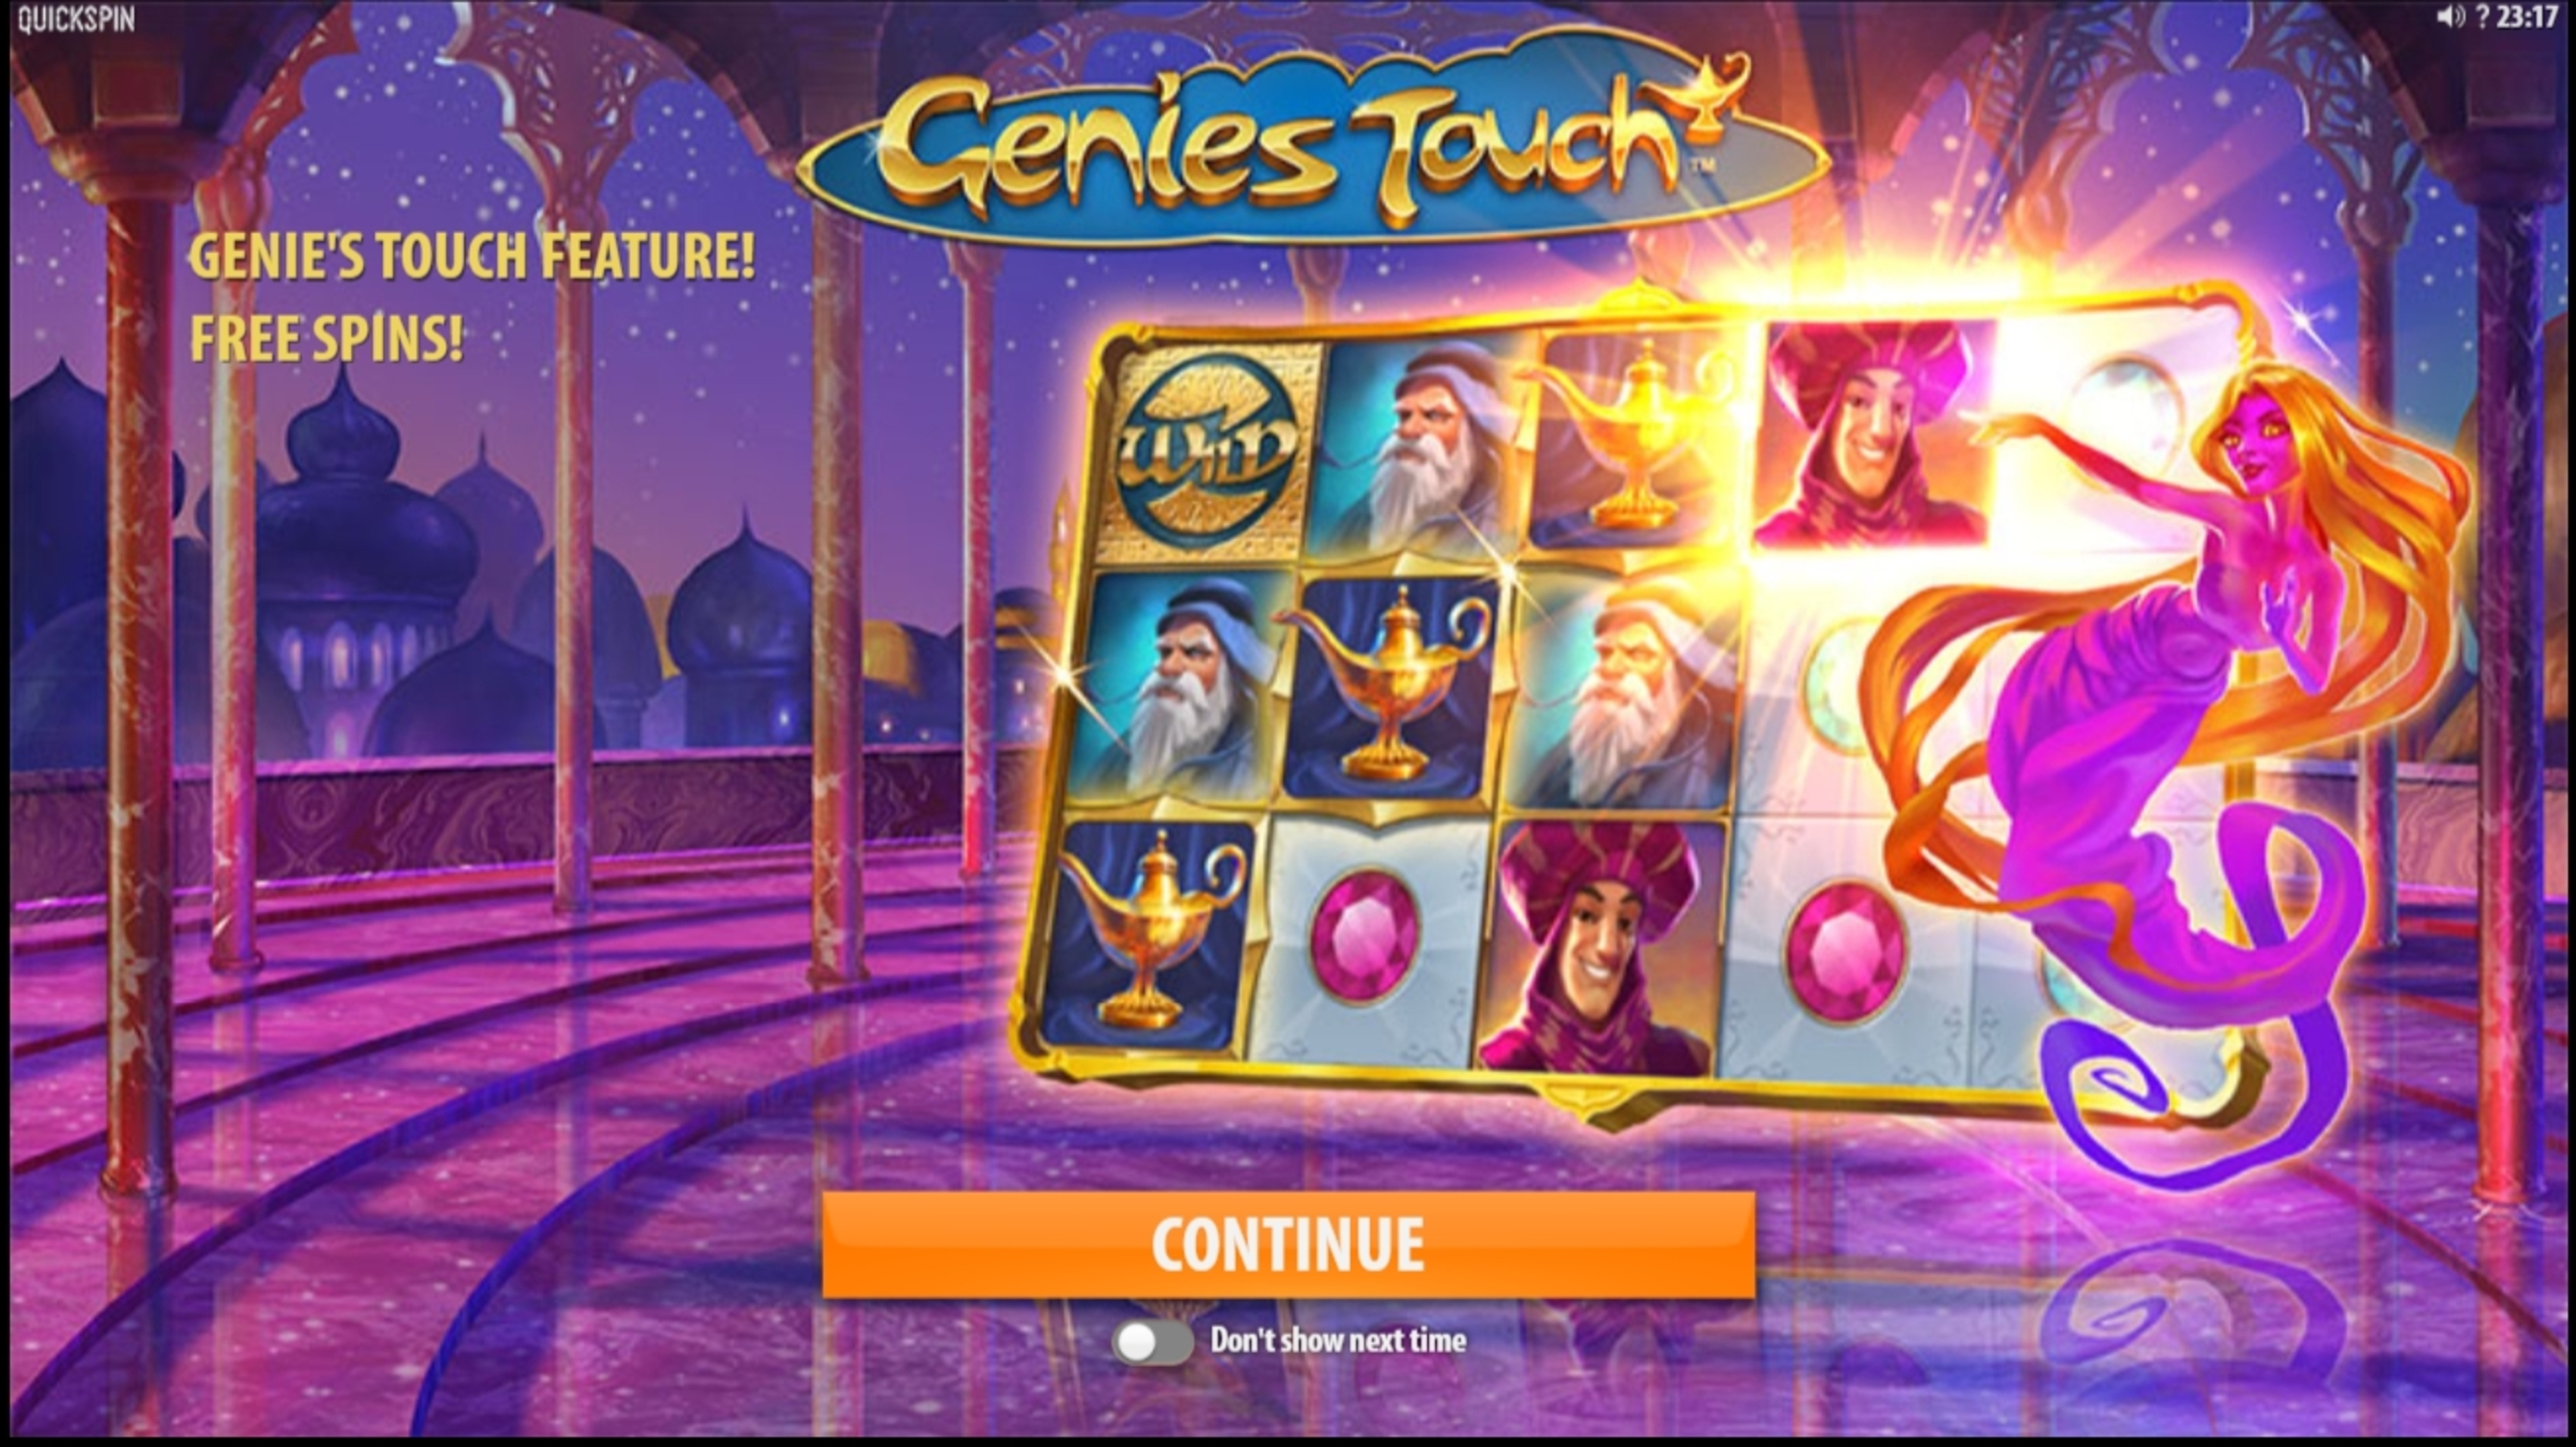 Play Genies Touch Free Casino Slot Game by Quickspin